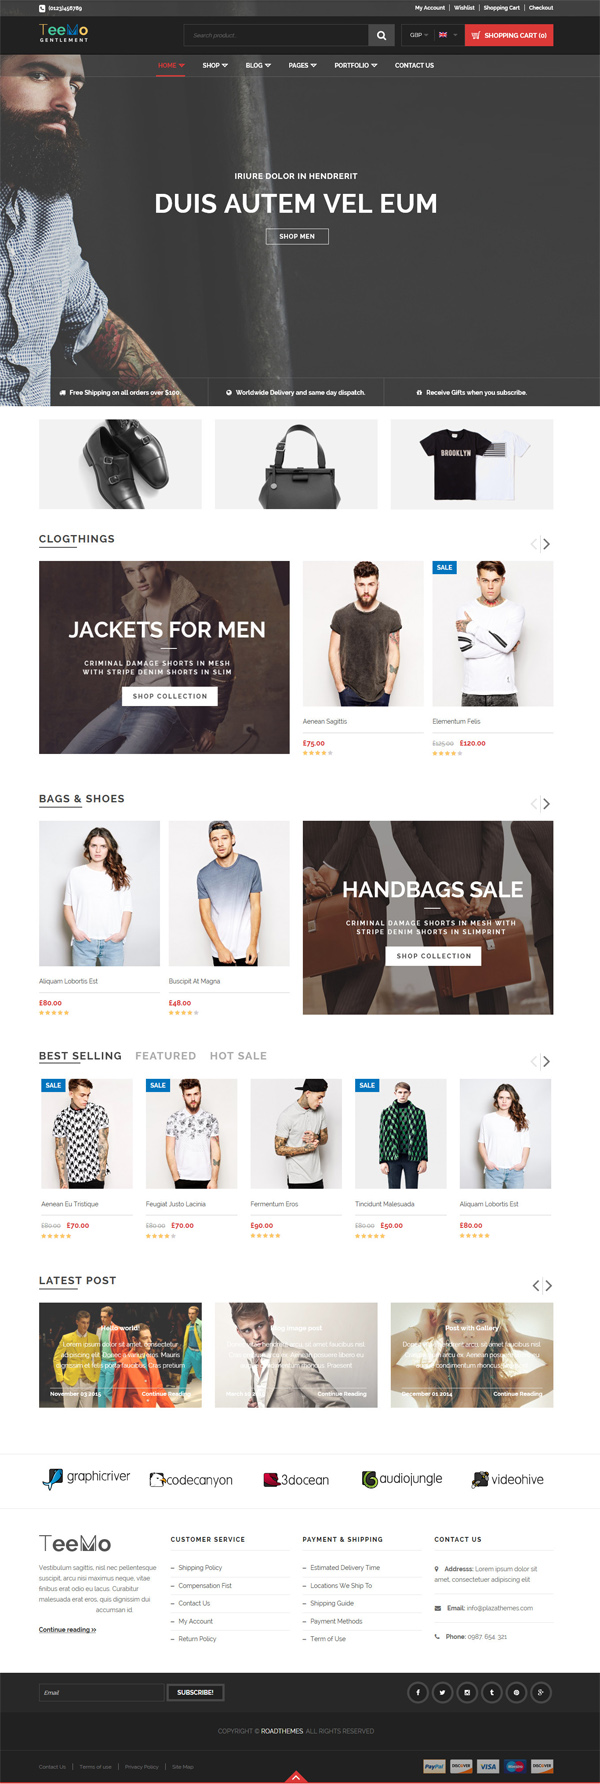 Teemo - Responsive WooCommerce WordPress Theme